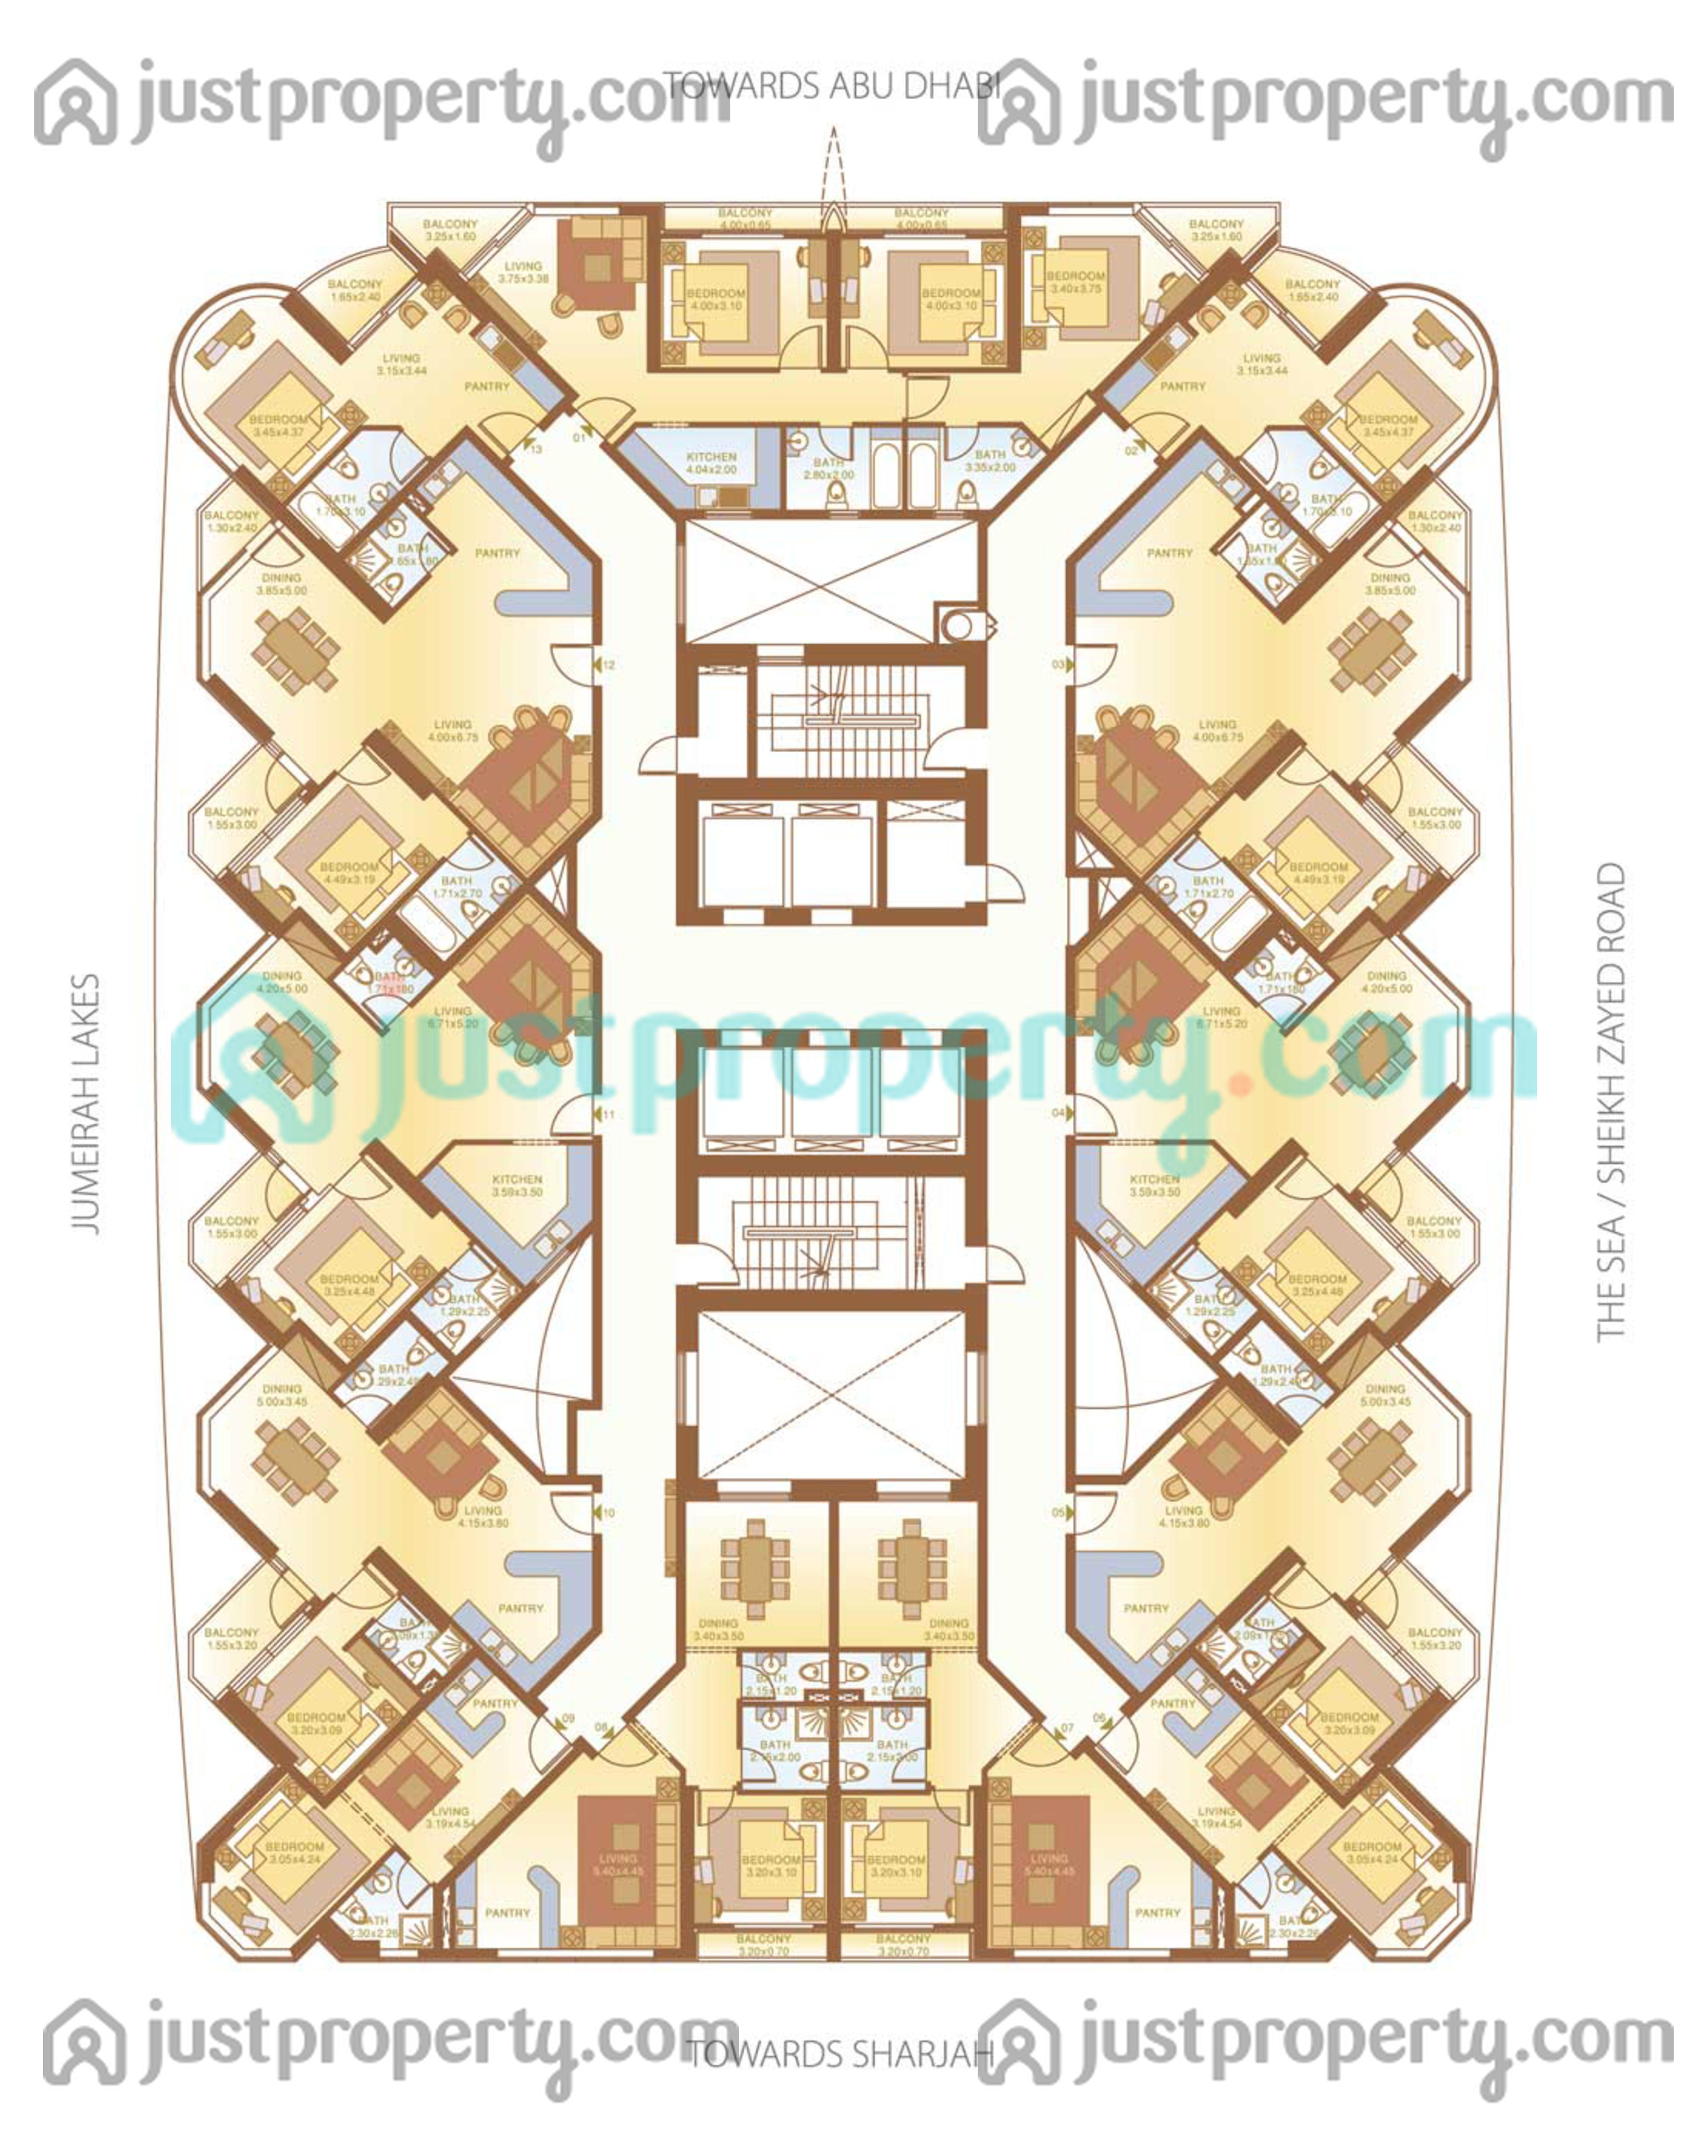 Dubai gate 2 floor plans for Floor plans zulal lakes dubai